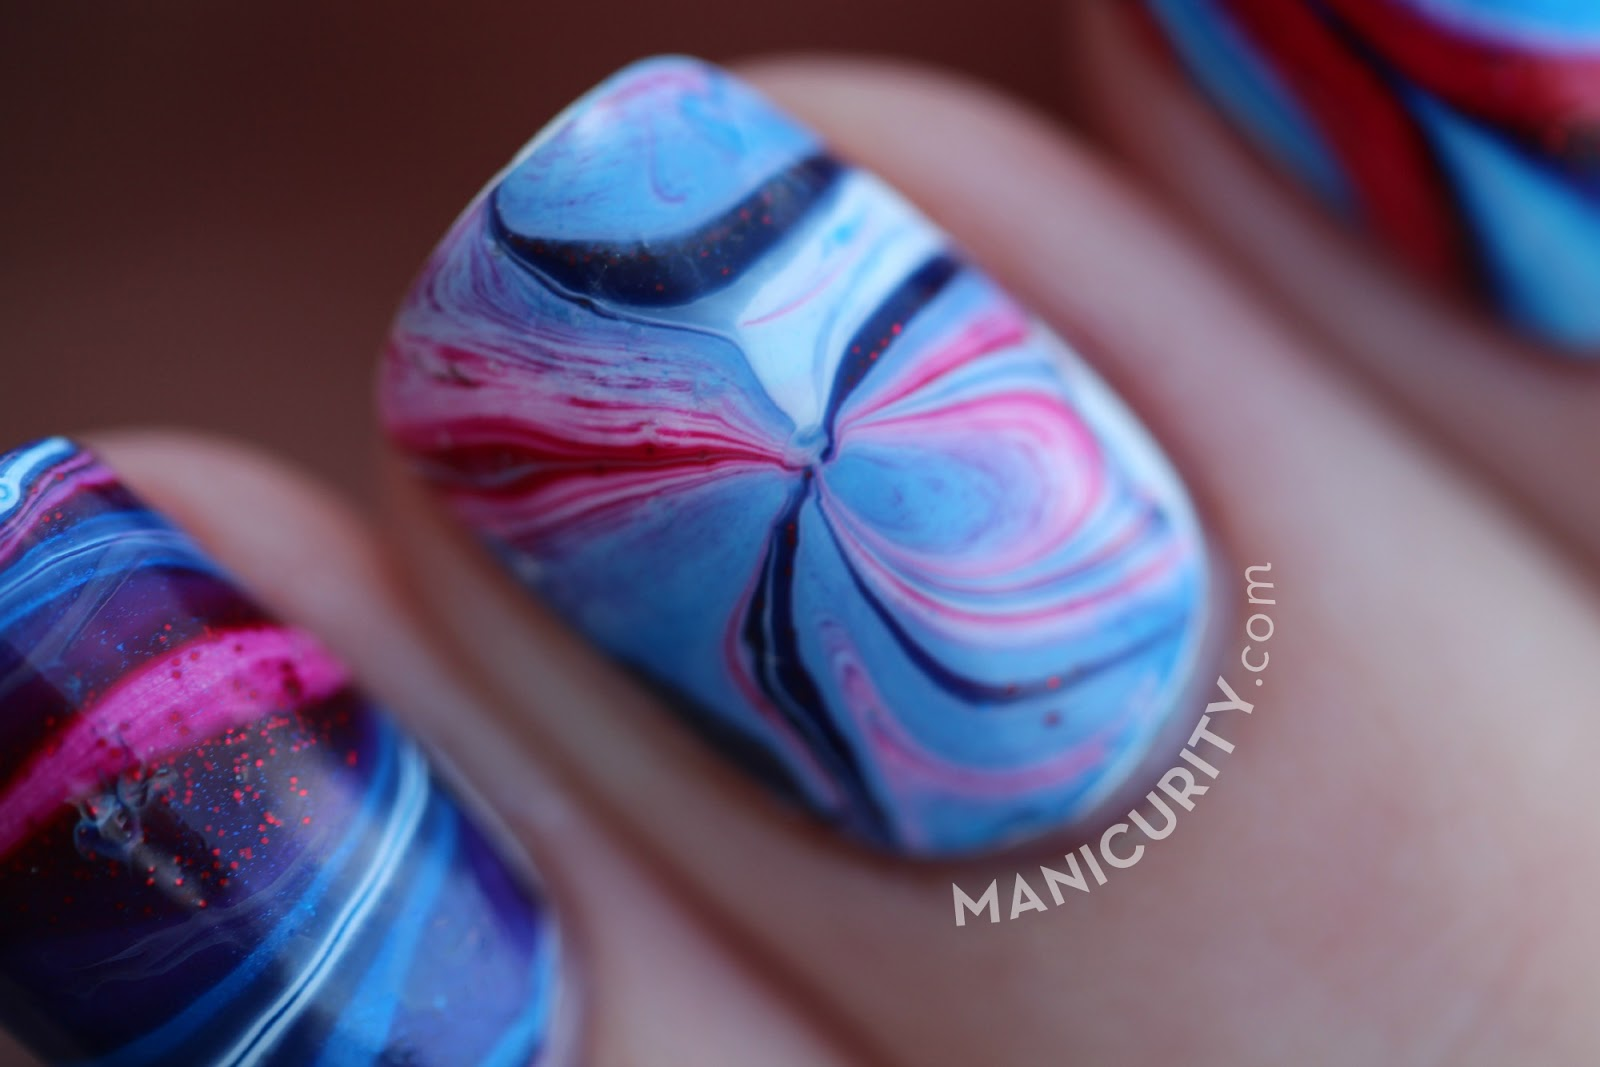 Stanley Cup Playoff 2014 Nails - Canadiens vs. Bruins Watermarble Nail Art | Manicurity.com